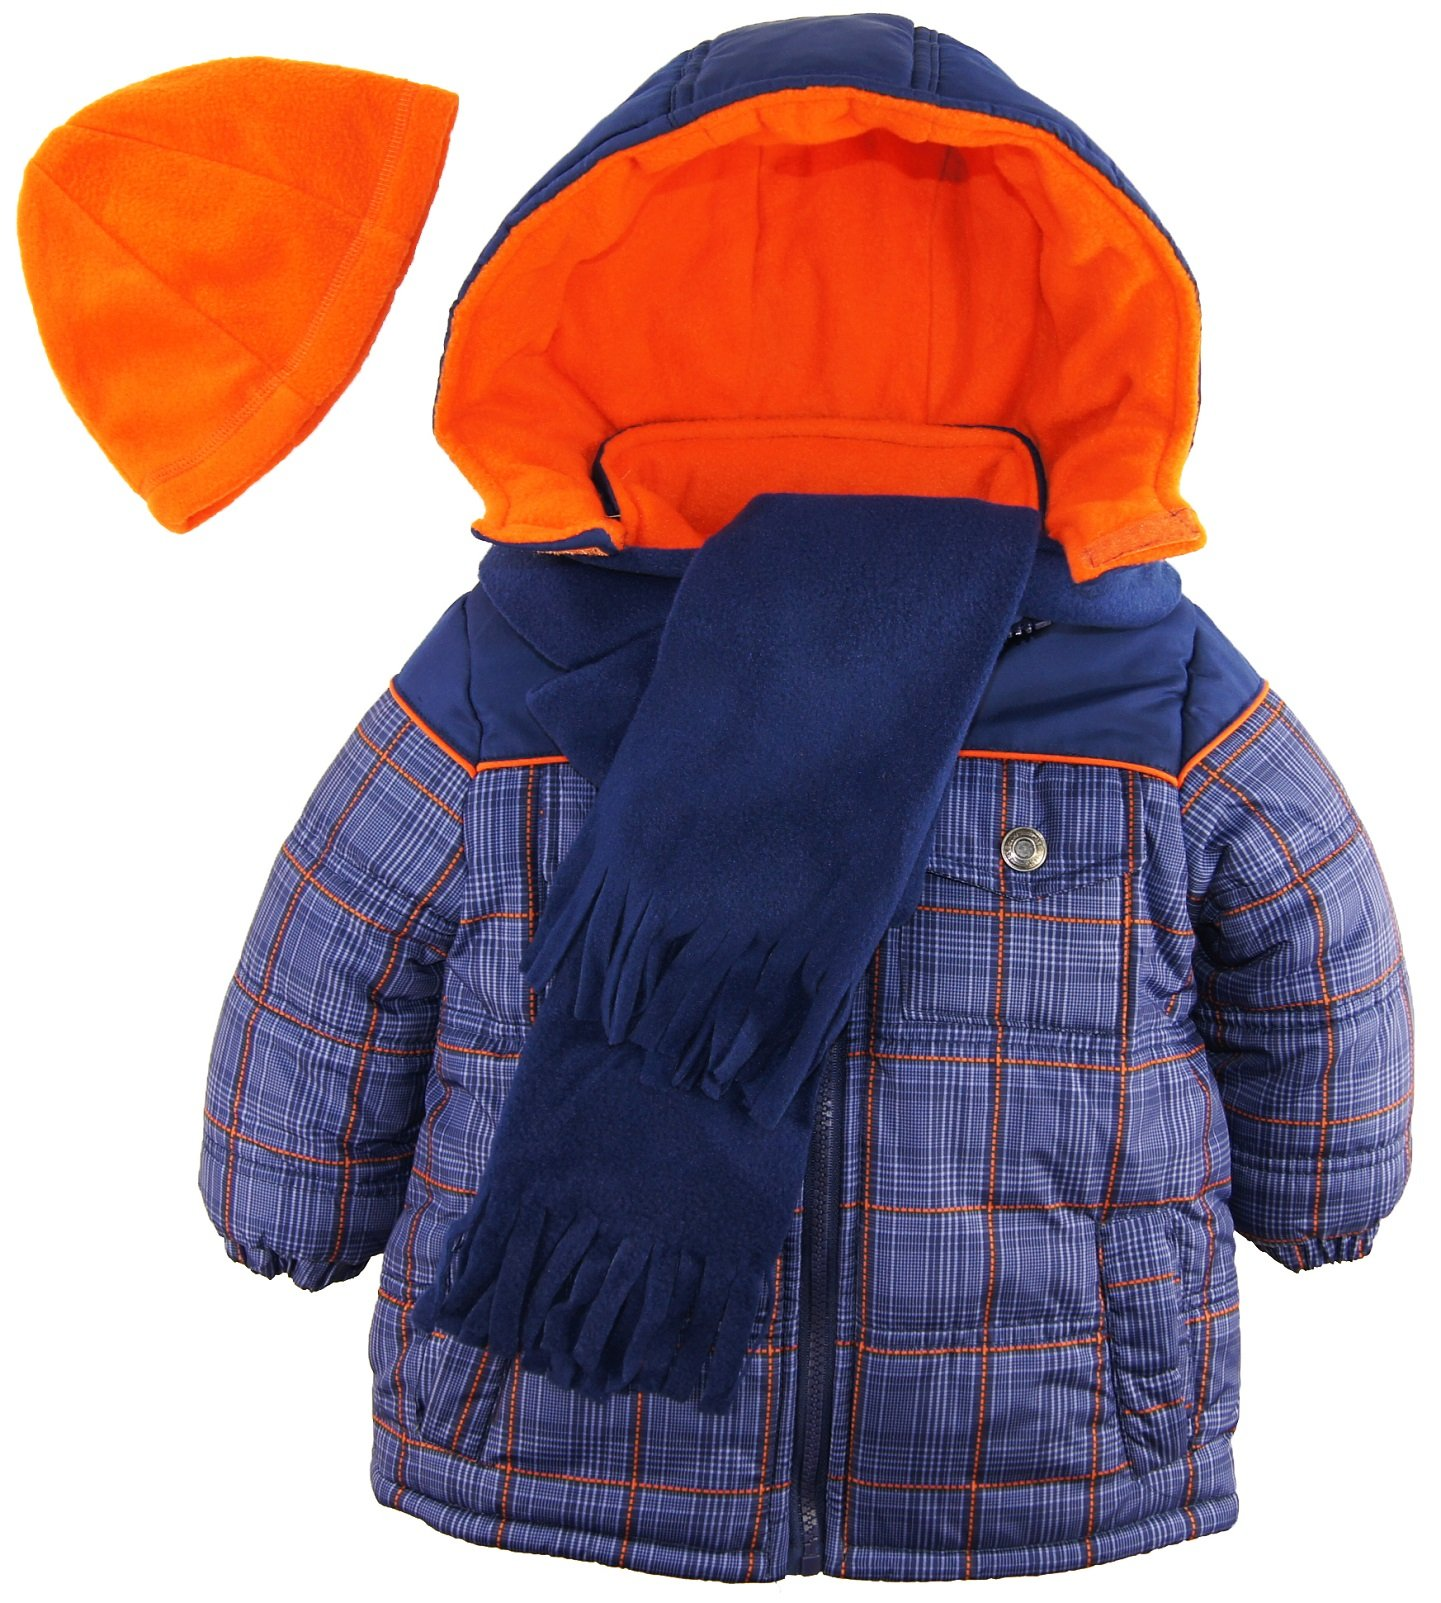 iXtreme Little Boys' Toddler Puffer Coat in Plaid with Hat and Scarf, Navy, 2T by iXtreme (Image #1)